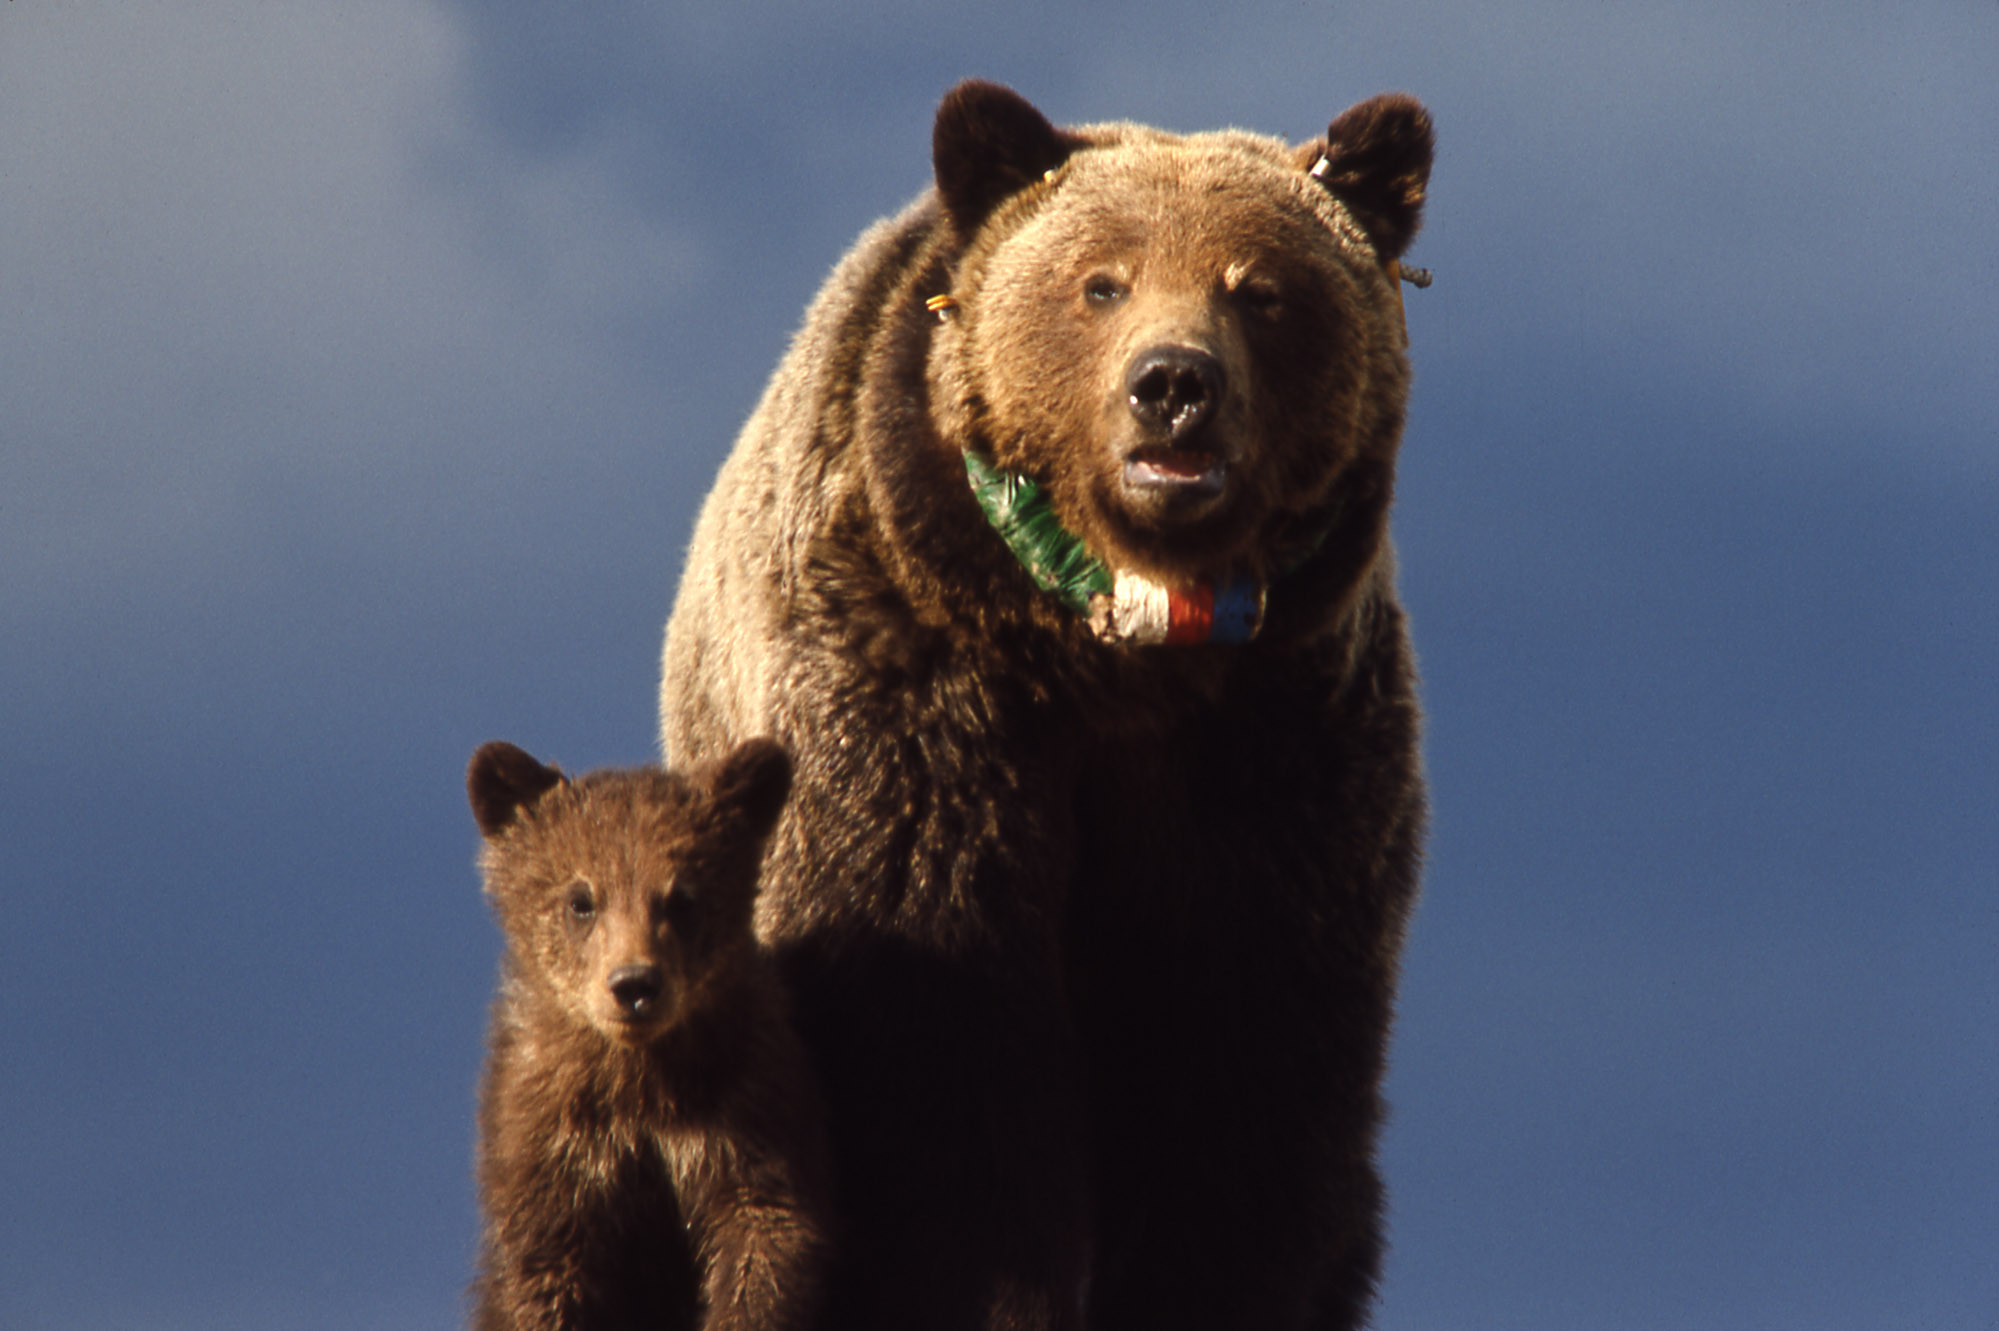 Yellowstone Grizzly Bears - An Update from the Field ...